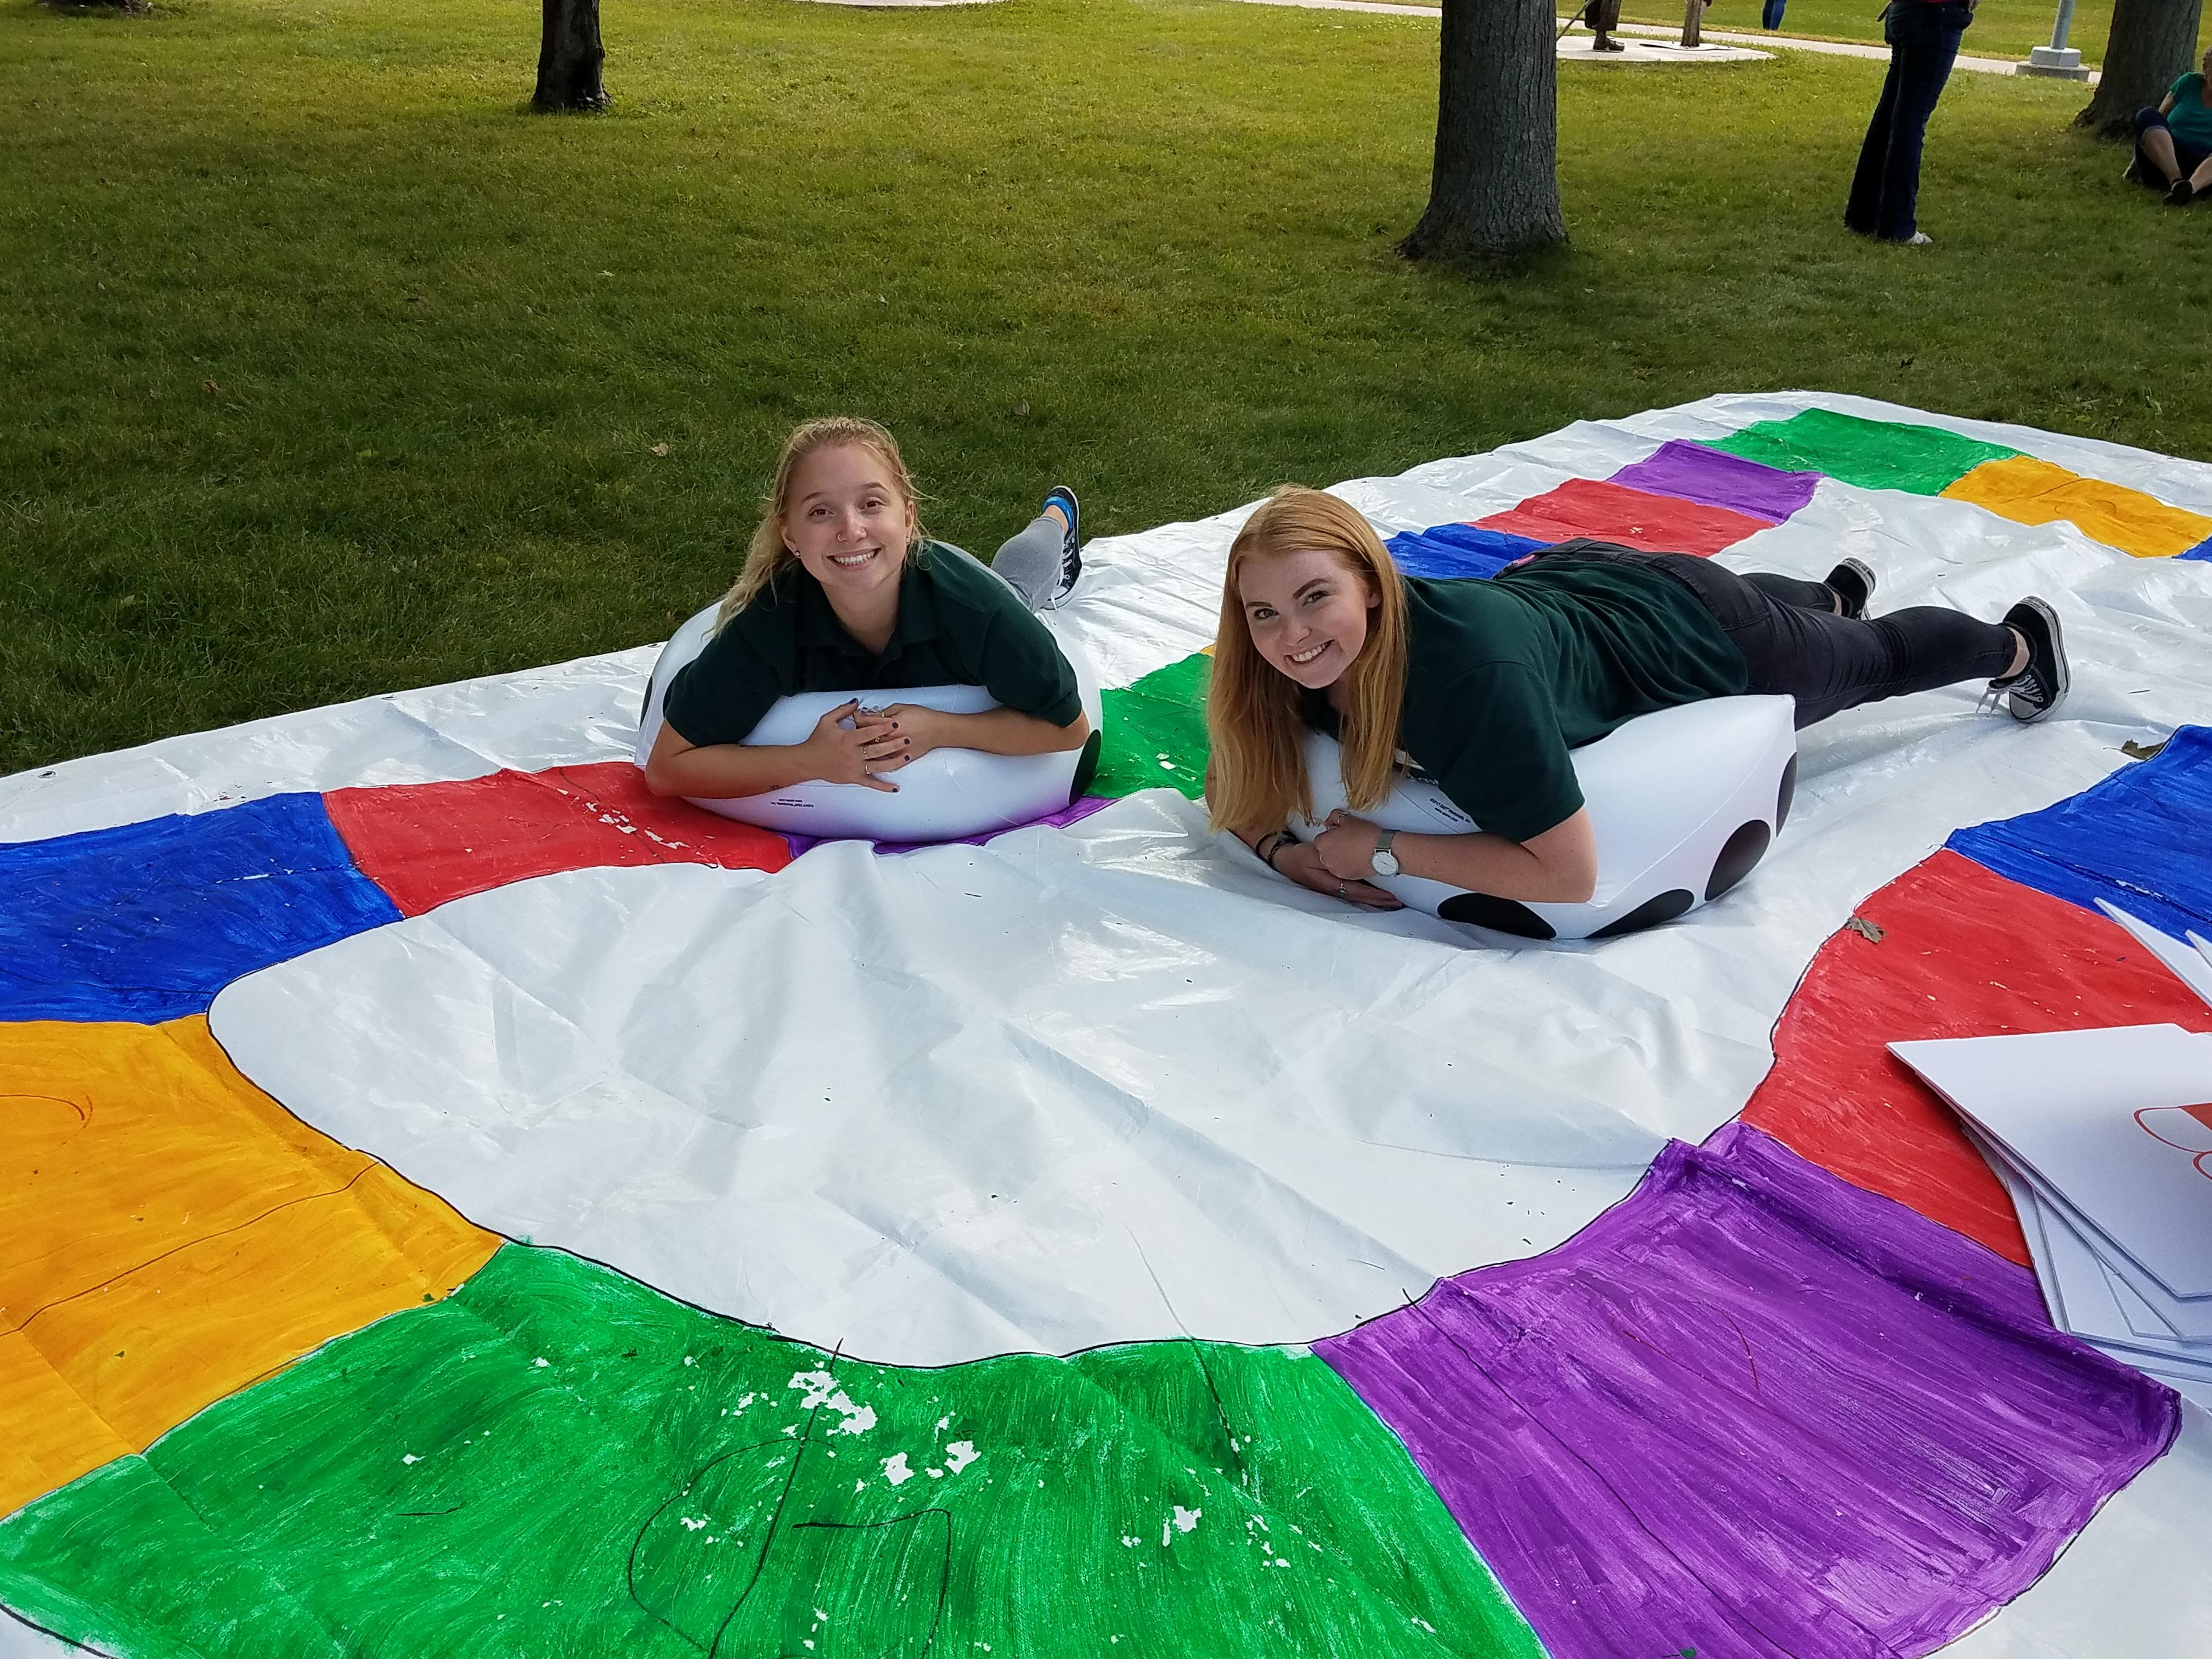 Two students on a giant game board with inflatables